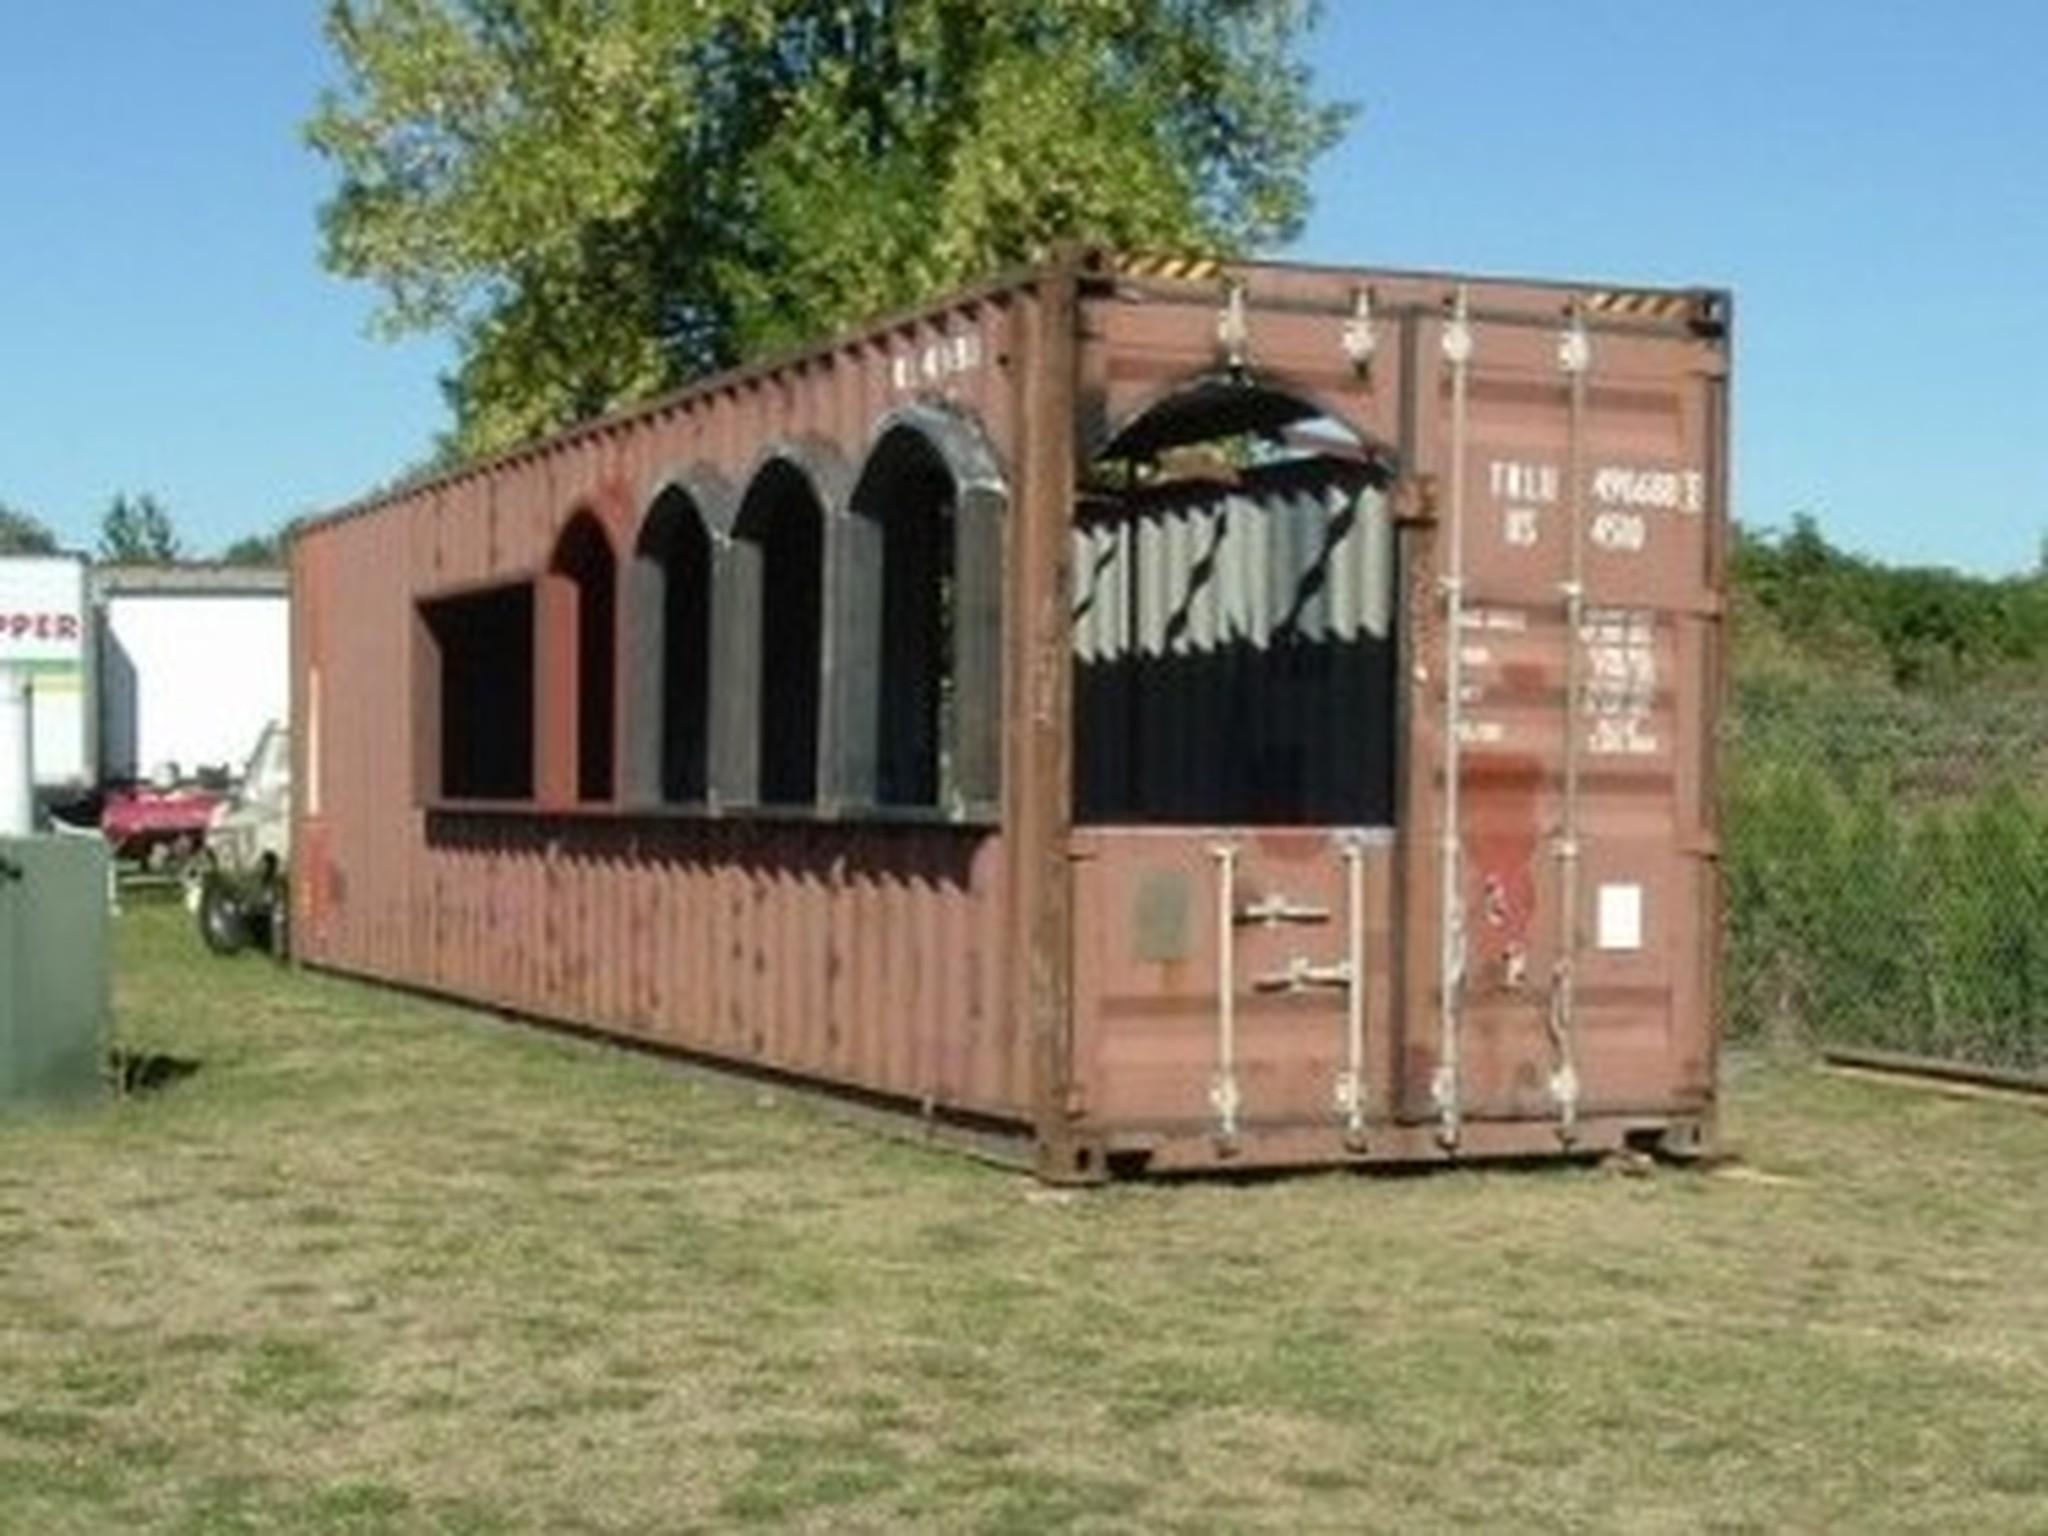 Forget big box stores how about a big box house new hampshire public radio - Building shipping container homes ...